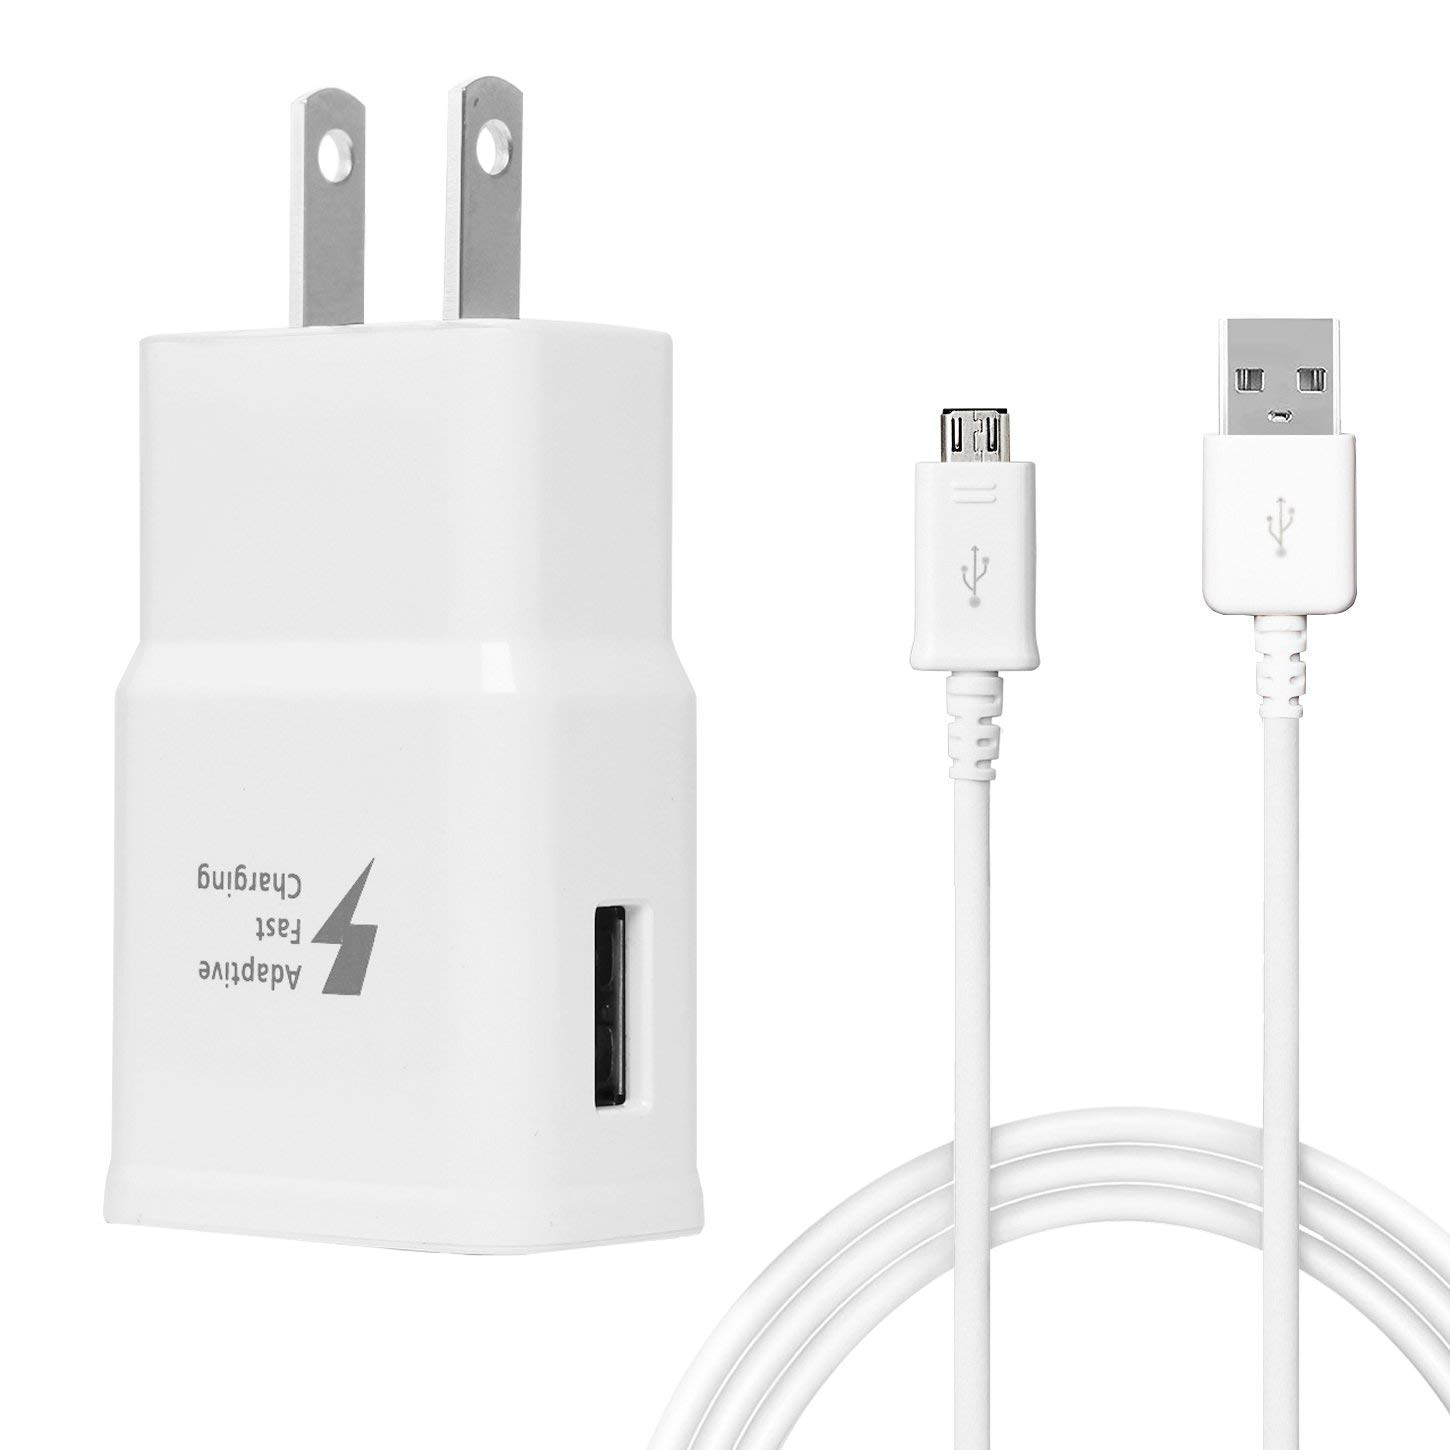 Samsung Fast Charger, for Samsung Galaxy S7 S7 Edge S6 S6 Edge Note5/4 LG G2 G3 G4, Galaxy Cable, Quick Charge 2.0 Adapter Micro USB, Wall Charger[White] + Cable[white] Yaochuang